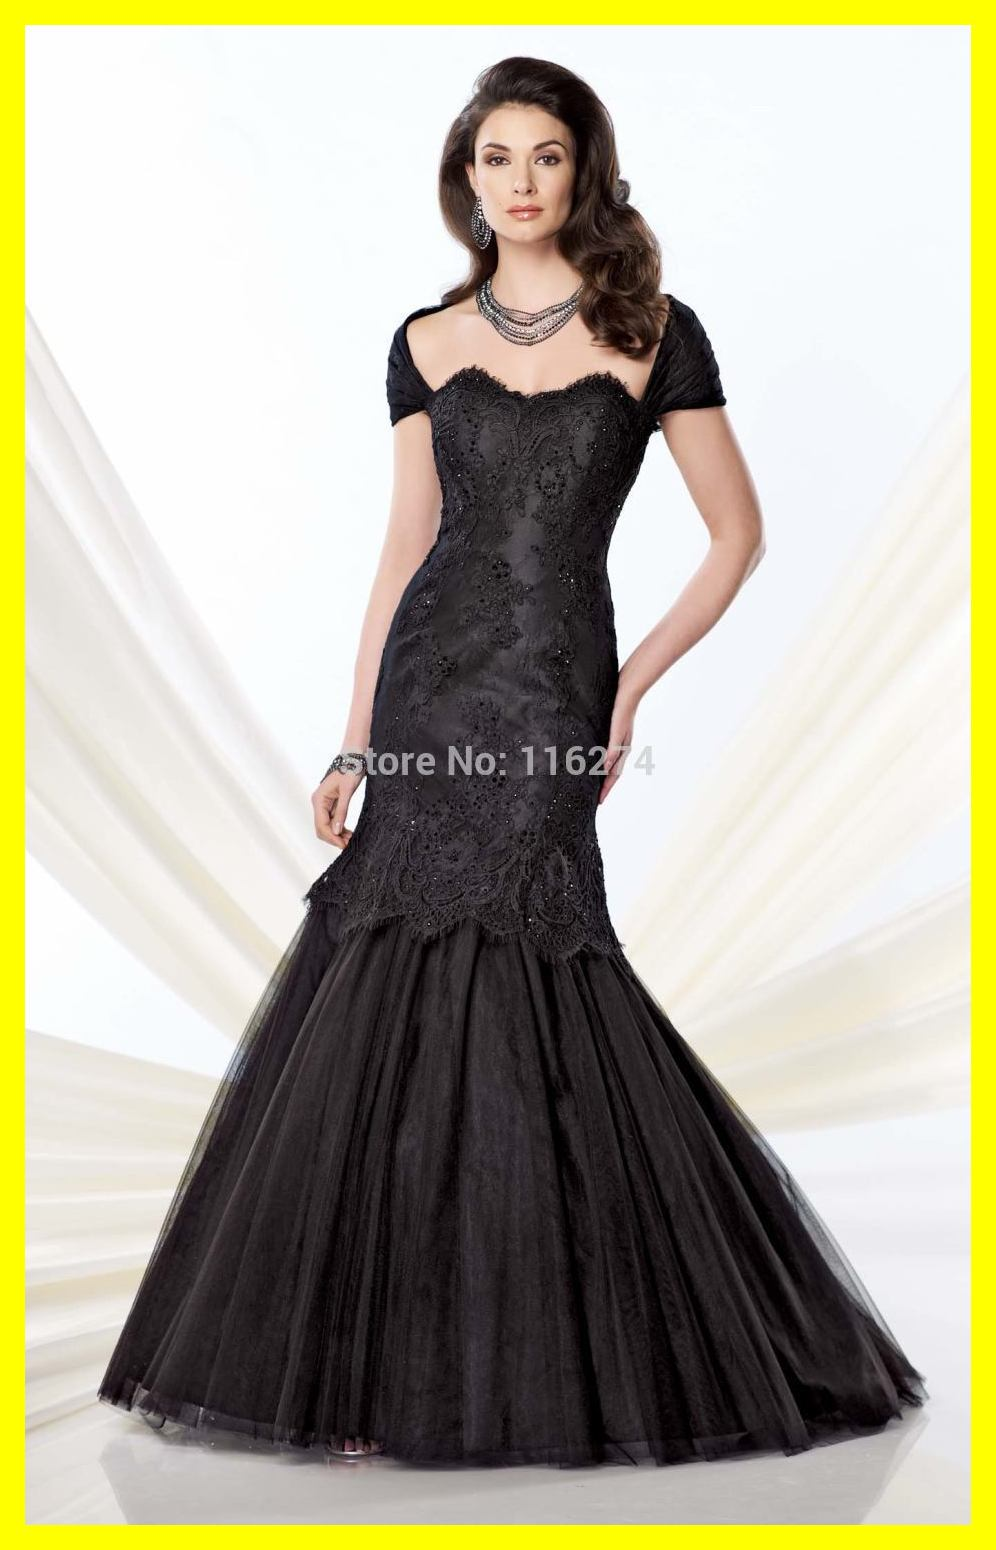 Used bridesmaid dresses dallas texas wedding dresses in jax used bridesmaid dresses dallas texas 111 ombrellifo Image collections